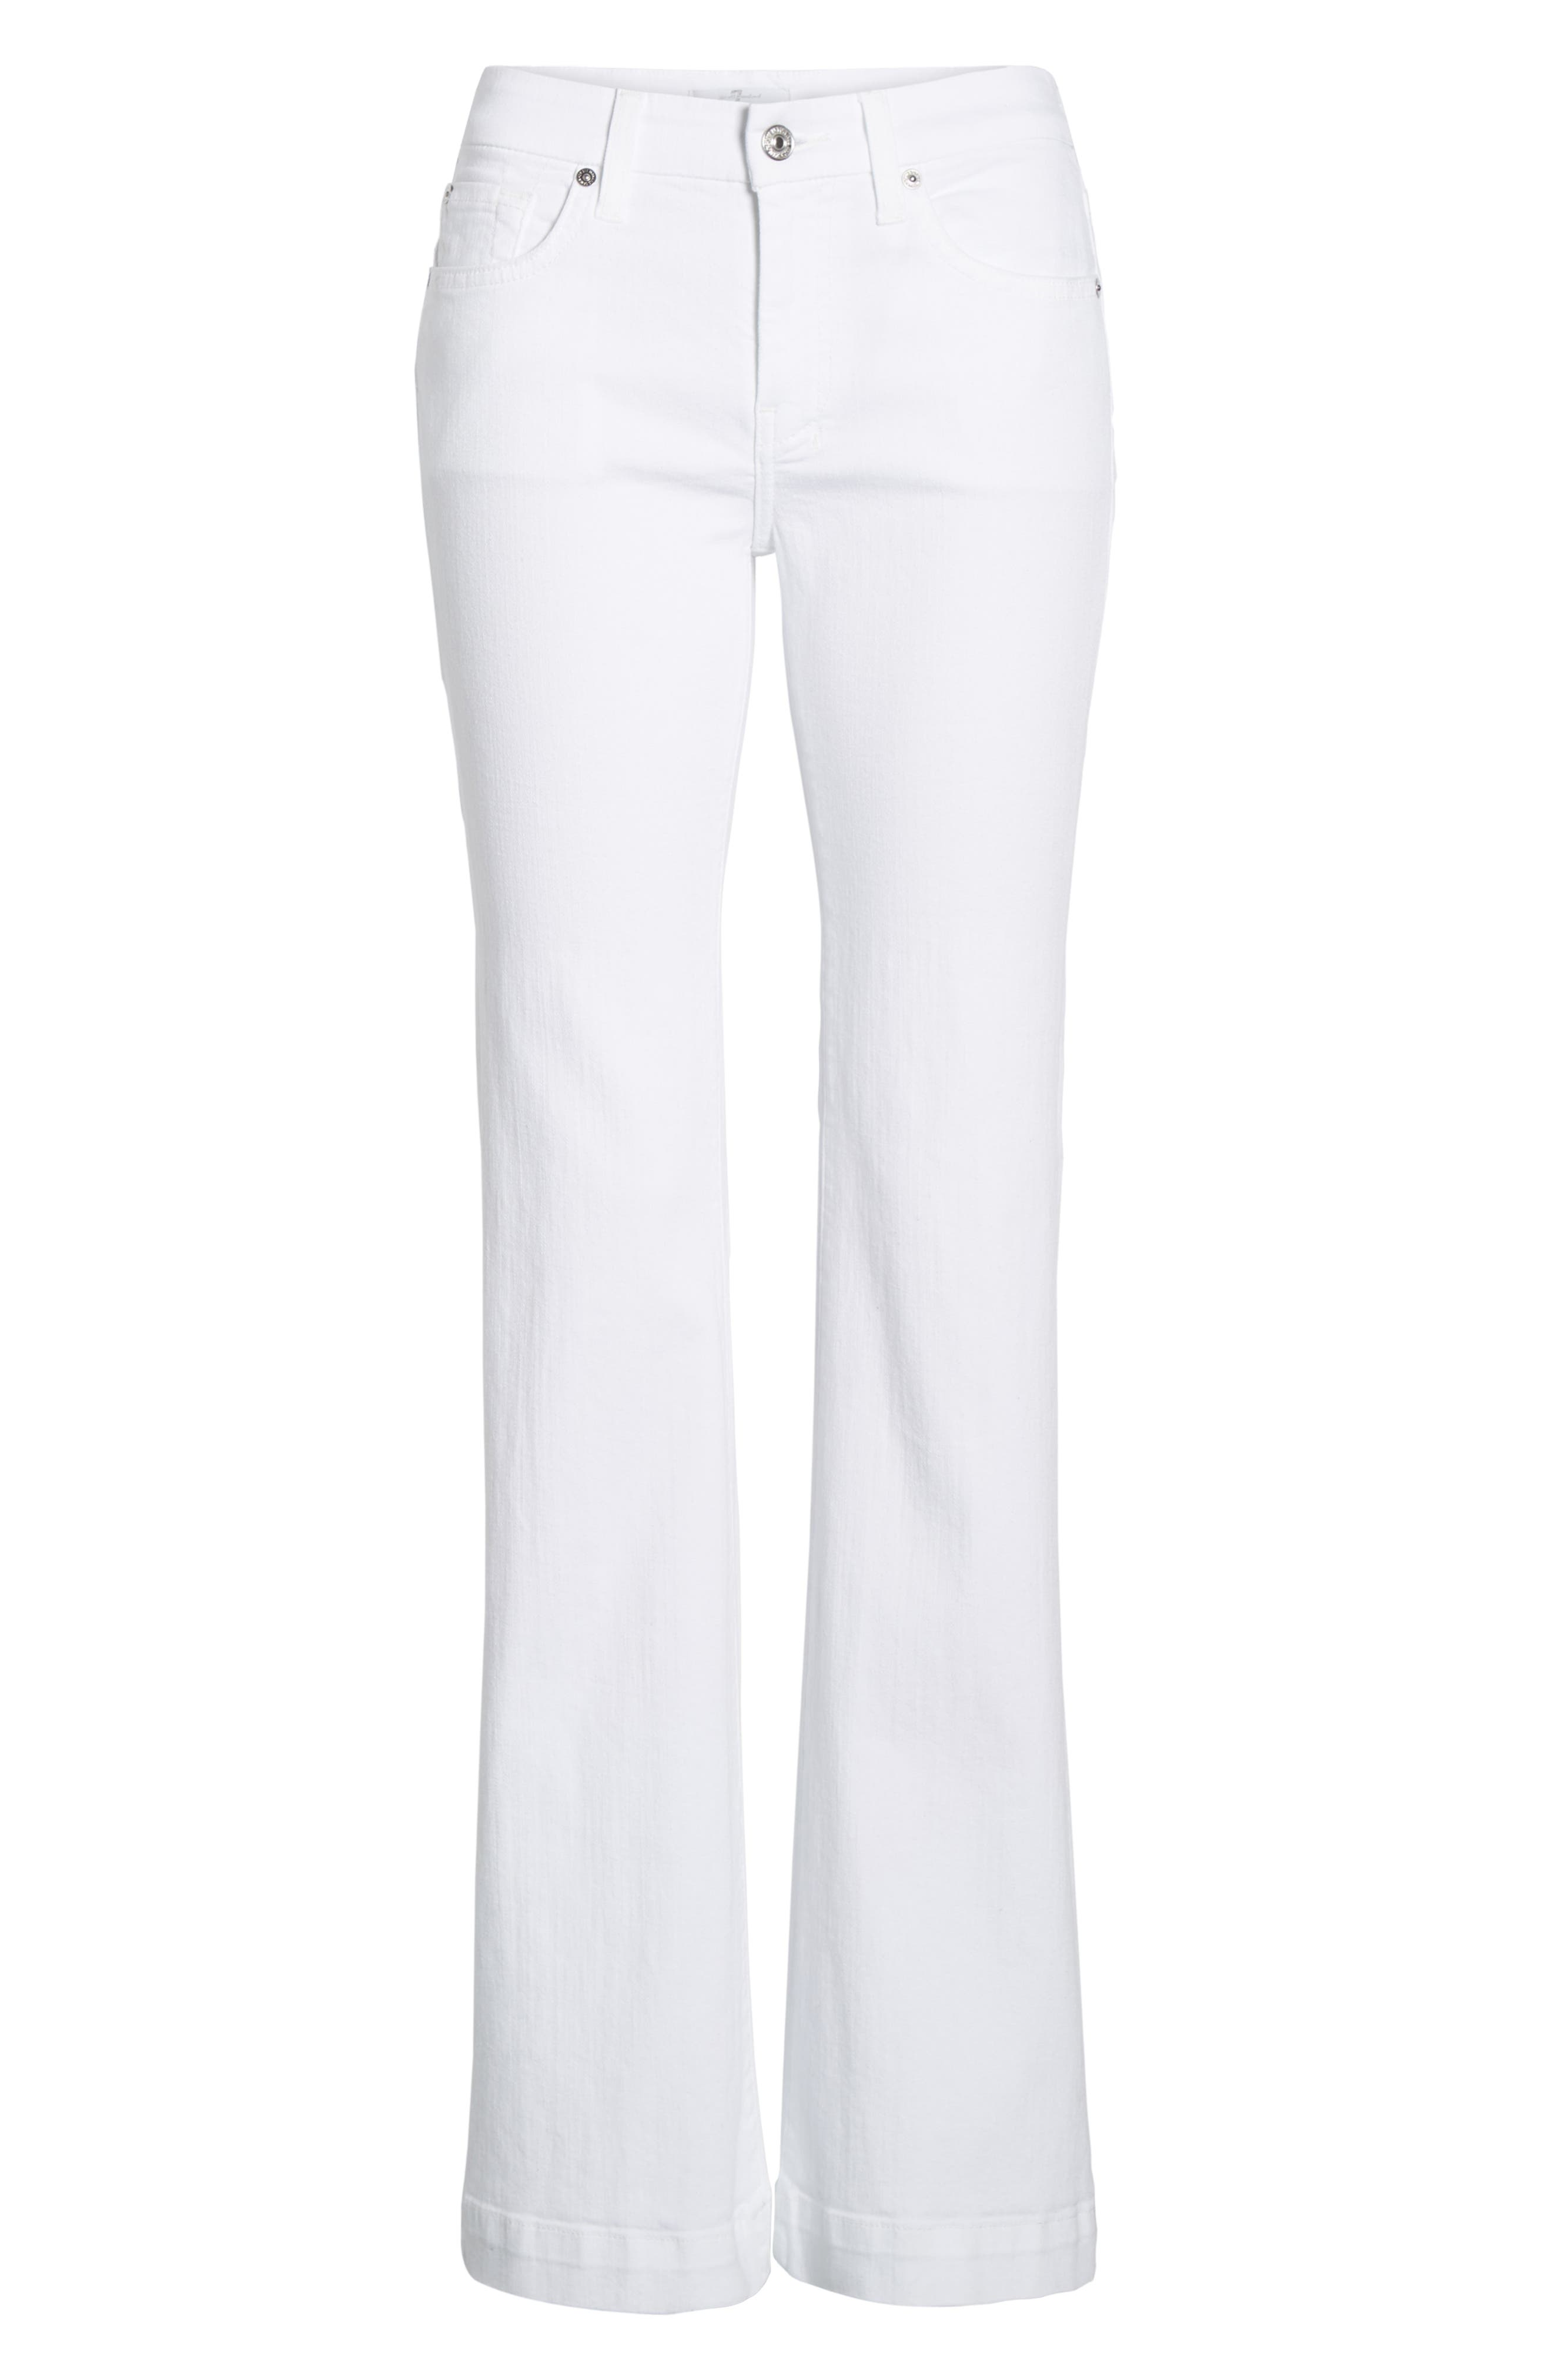 7 FOR ALL MANKIND<SUP>®</SUP>, Dojo Flare Jeans, Alternate thumbnail 7, color, WHITE RUNWAY DENIM